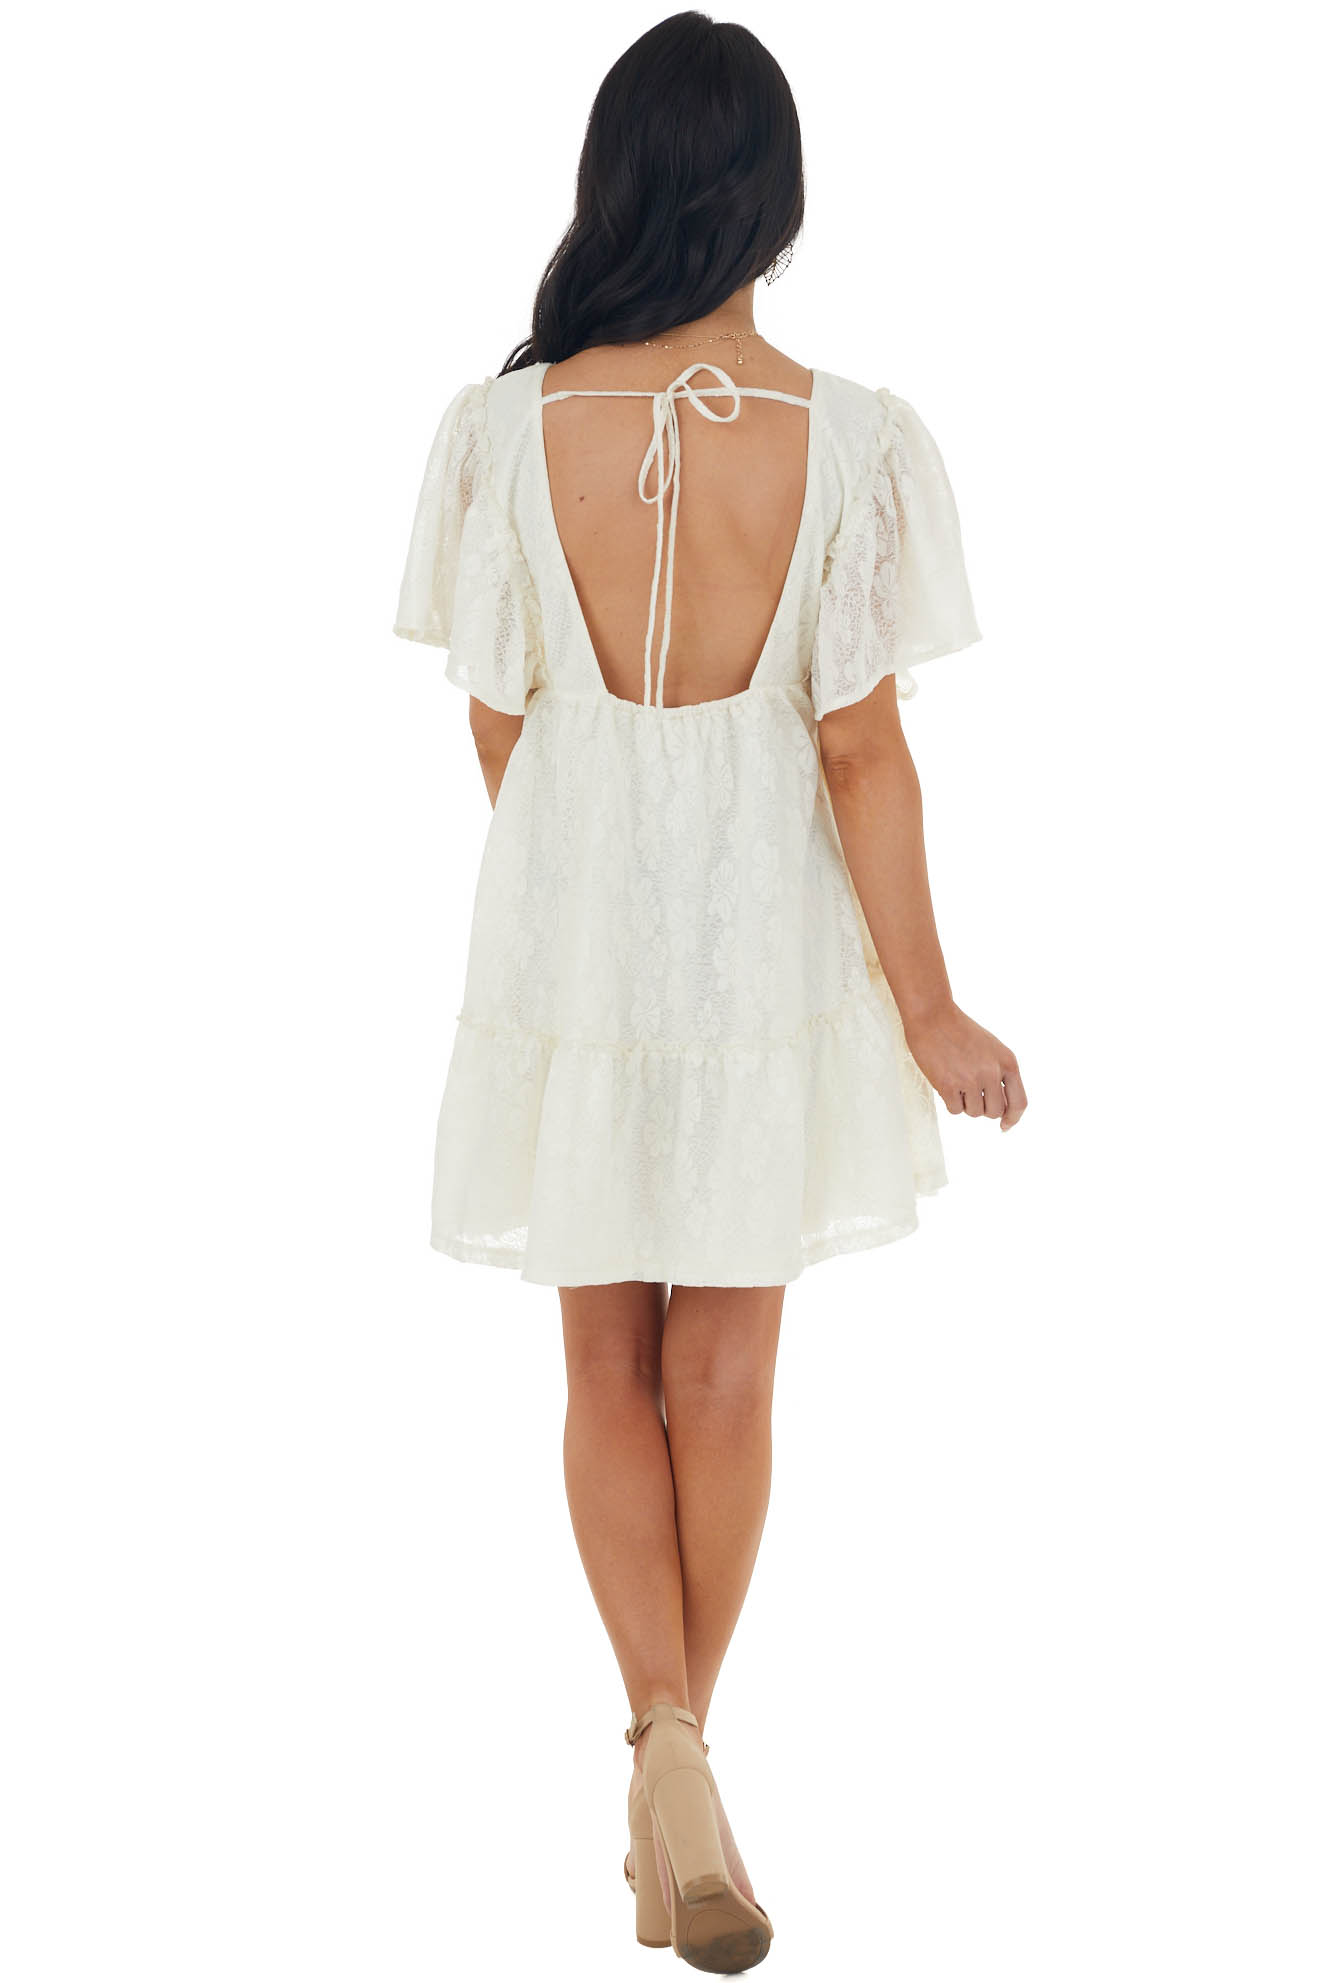 Cream Lace Mini Babydoll Dress with Open Back